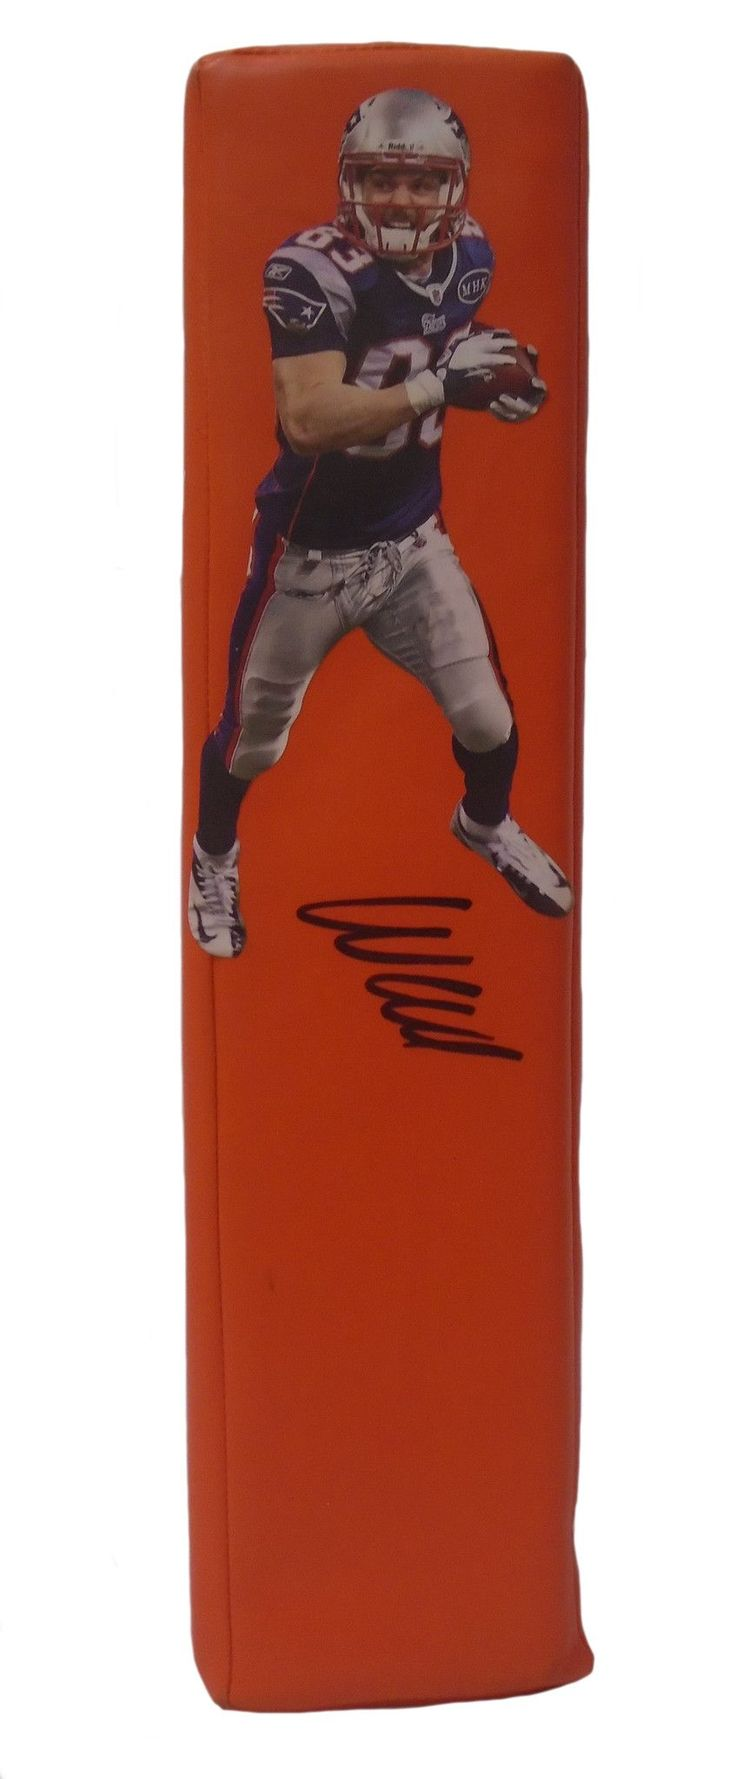 Wes Welker Autographed New England Patriots Football End Zone Touchdown Pylon, Proof